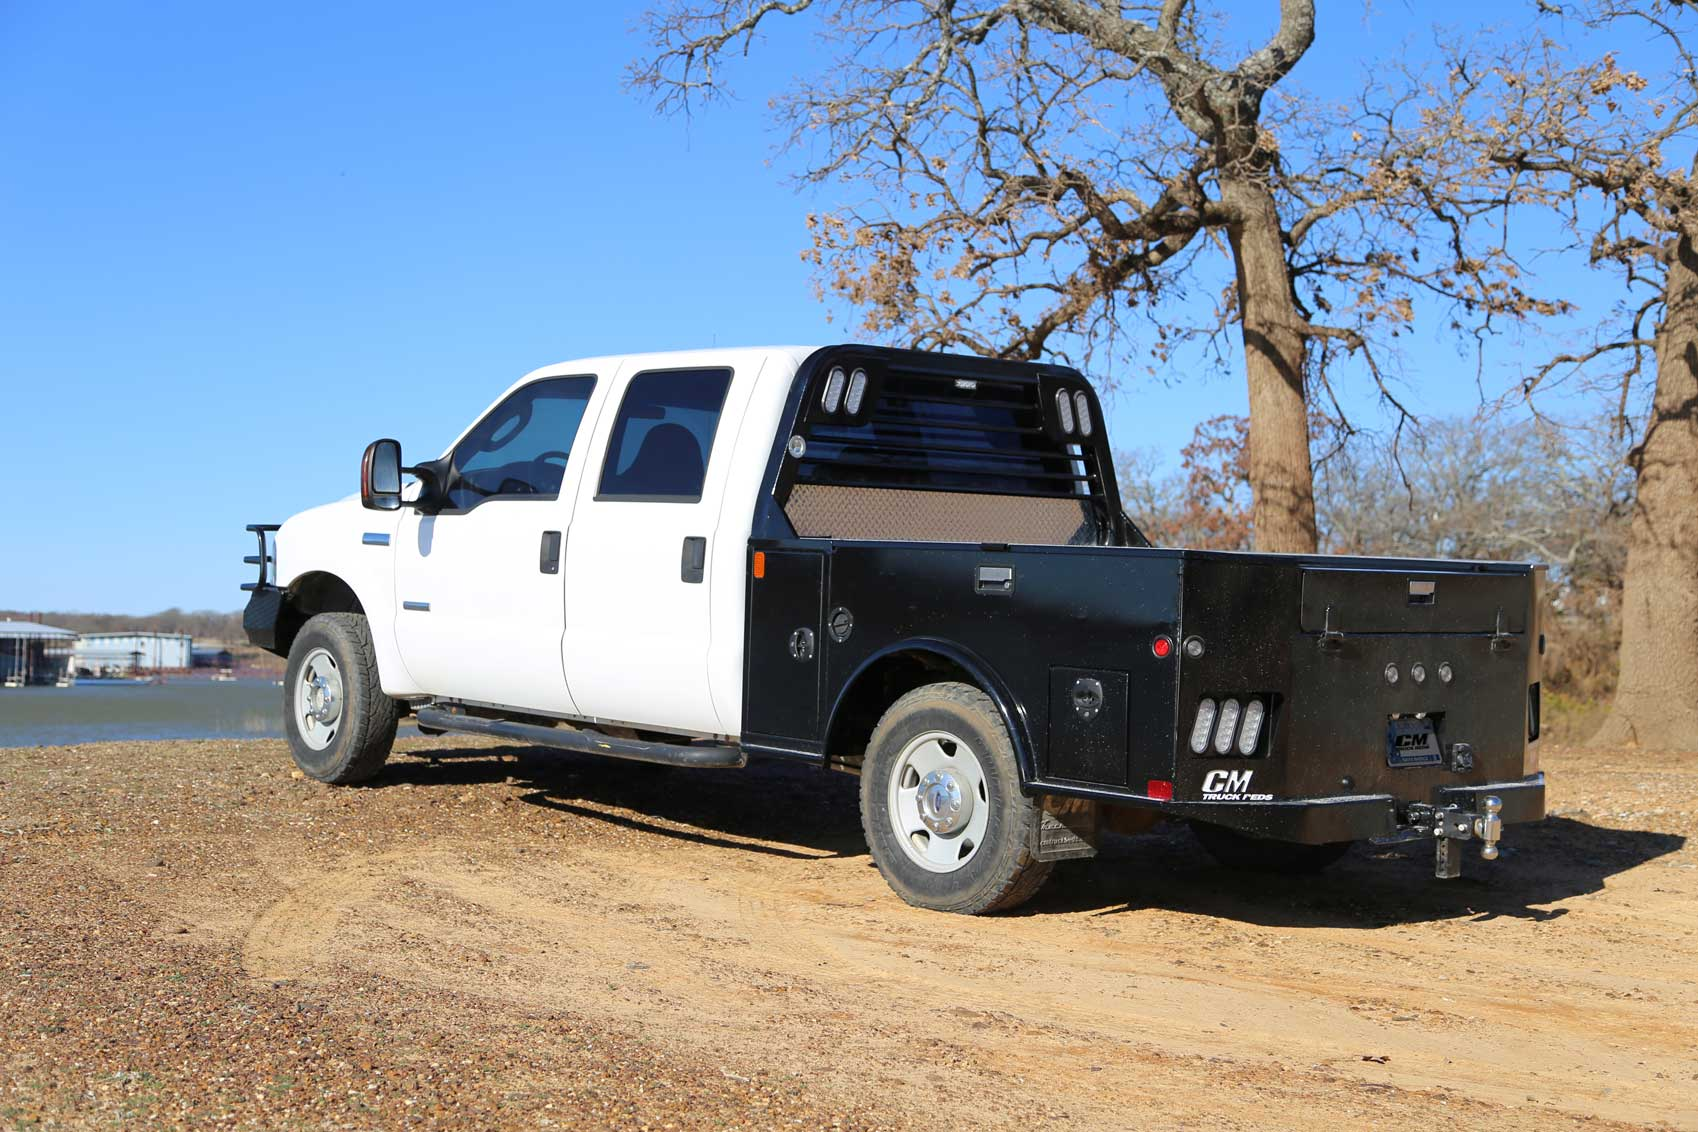 TM Deluxe towing-style flatbed next to trees with rear toolbox and gooseneck positions on farm